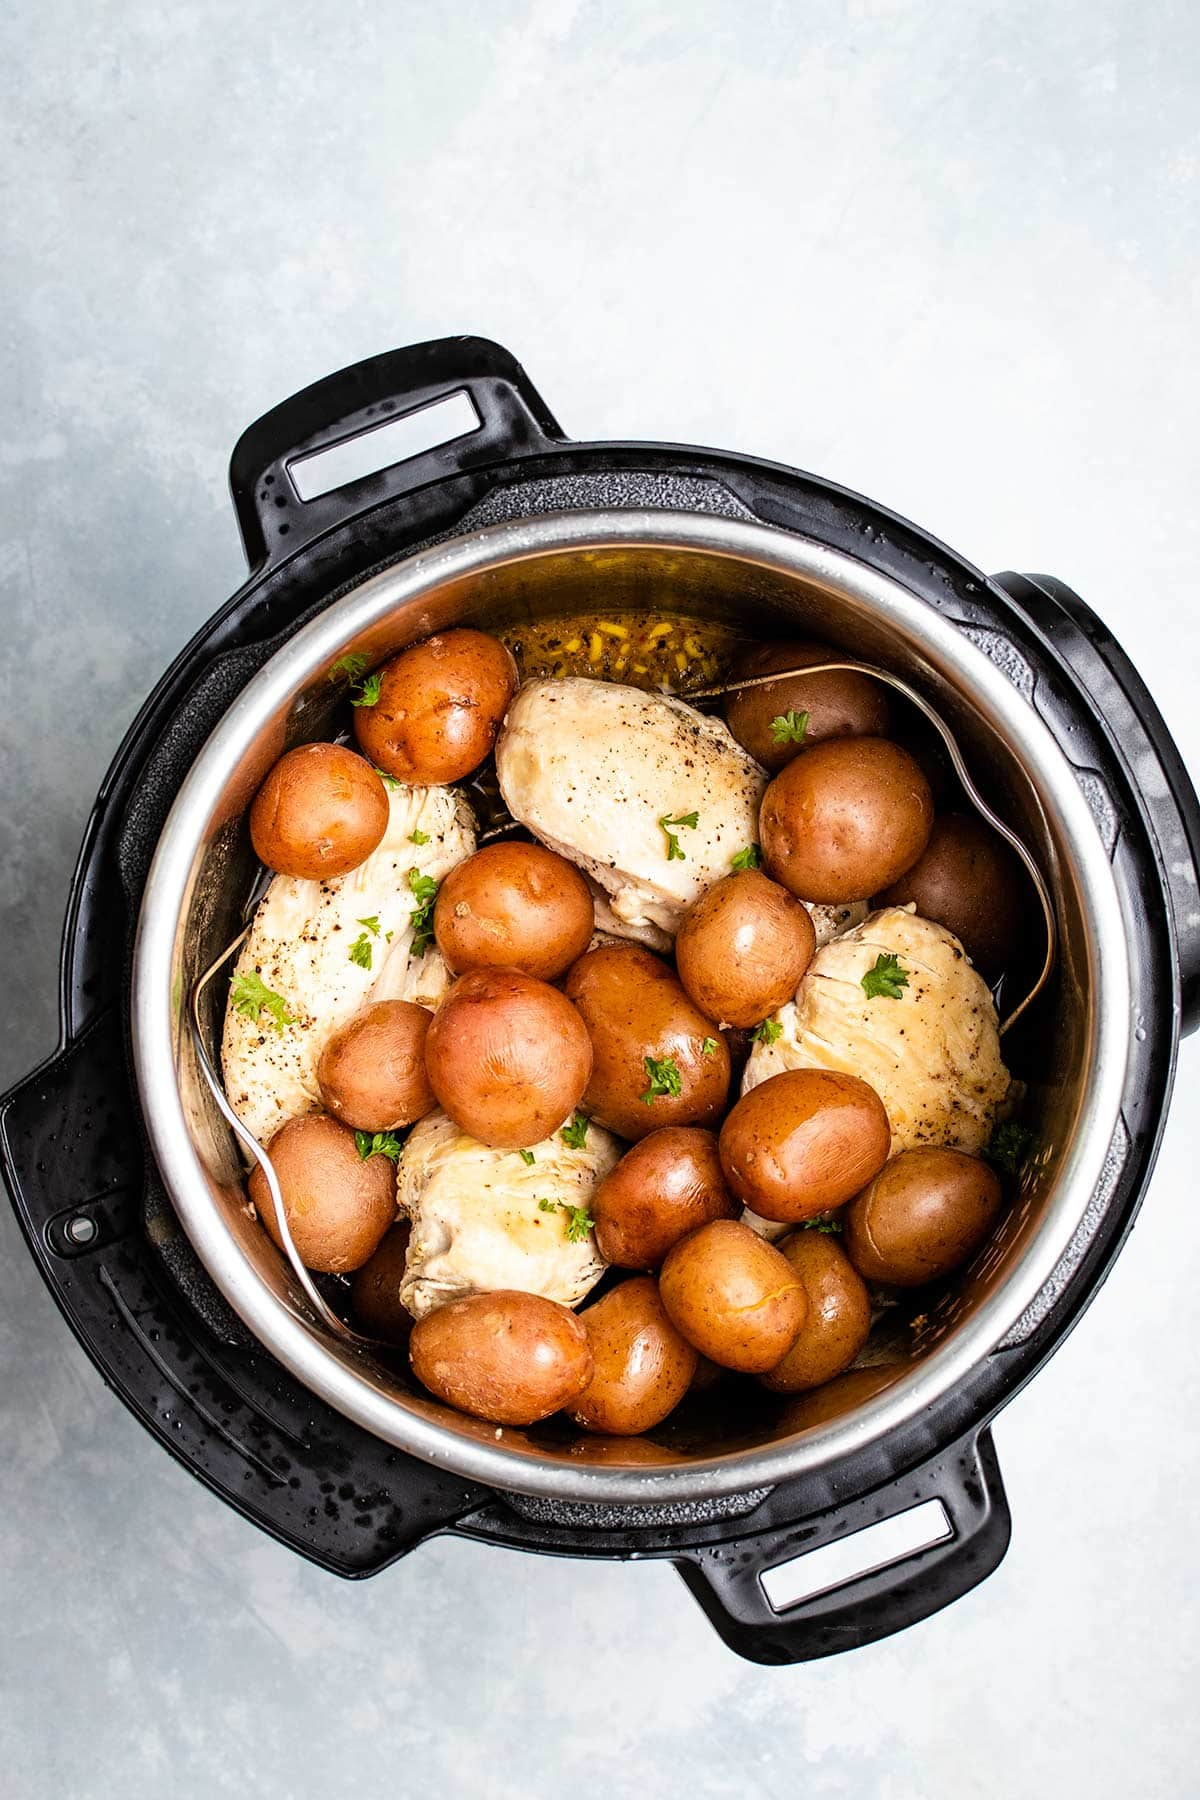 chicken and potatoes sprinkled with fresh parsley in an Instant Pot